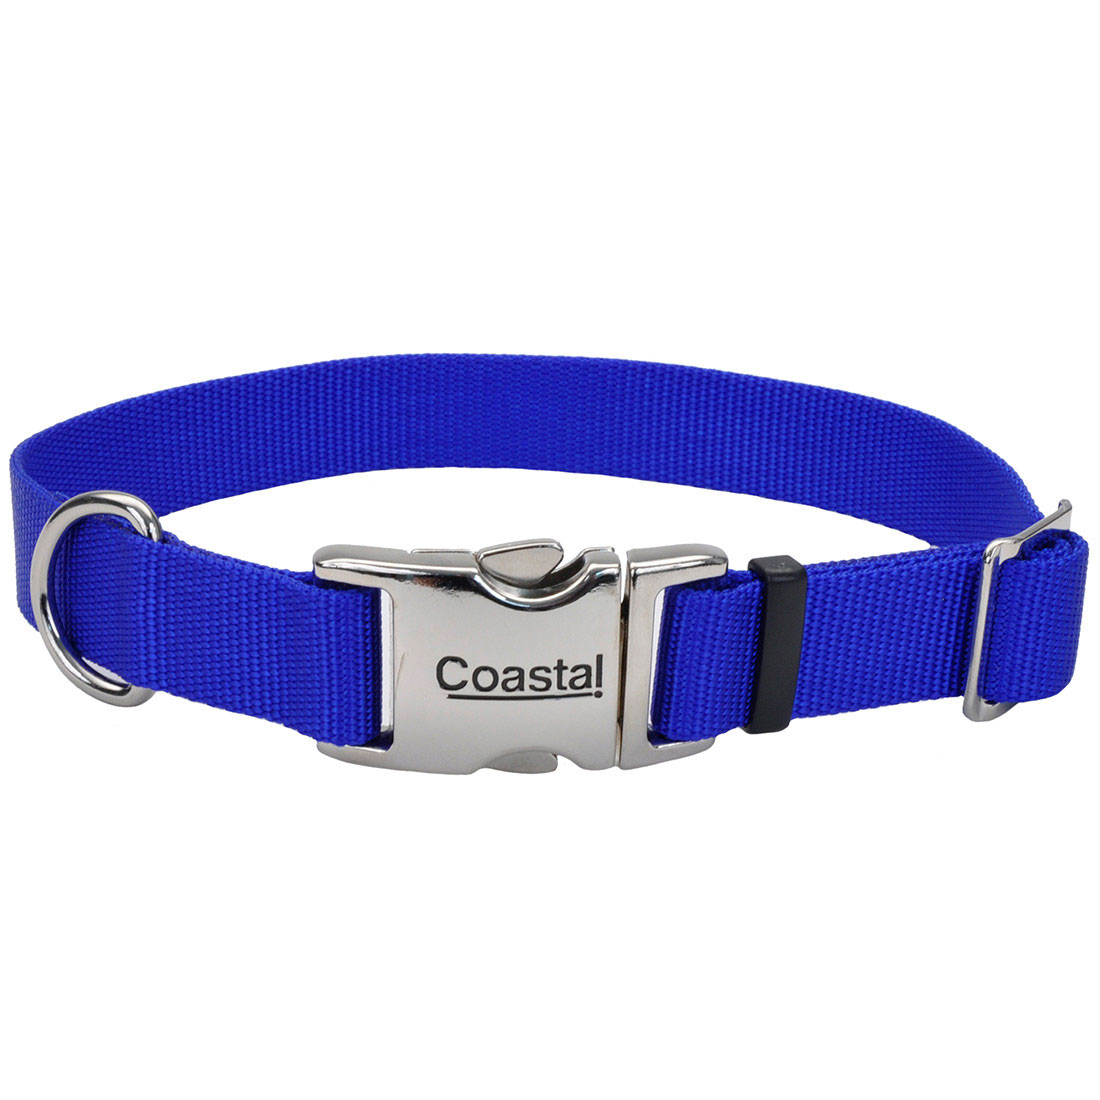 Coastal Adjustable Collar with Metal Buckle for Dogs, Blue Image